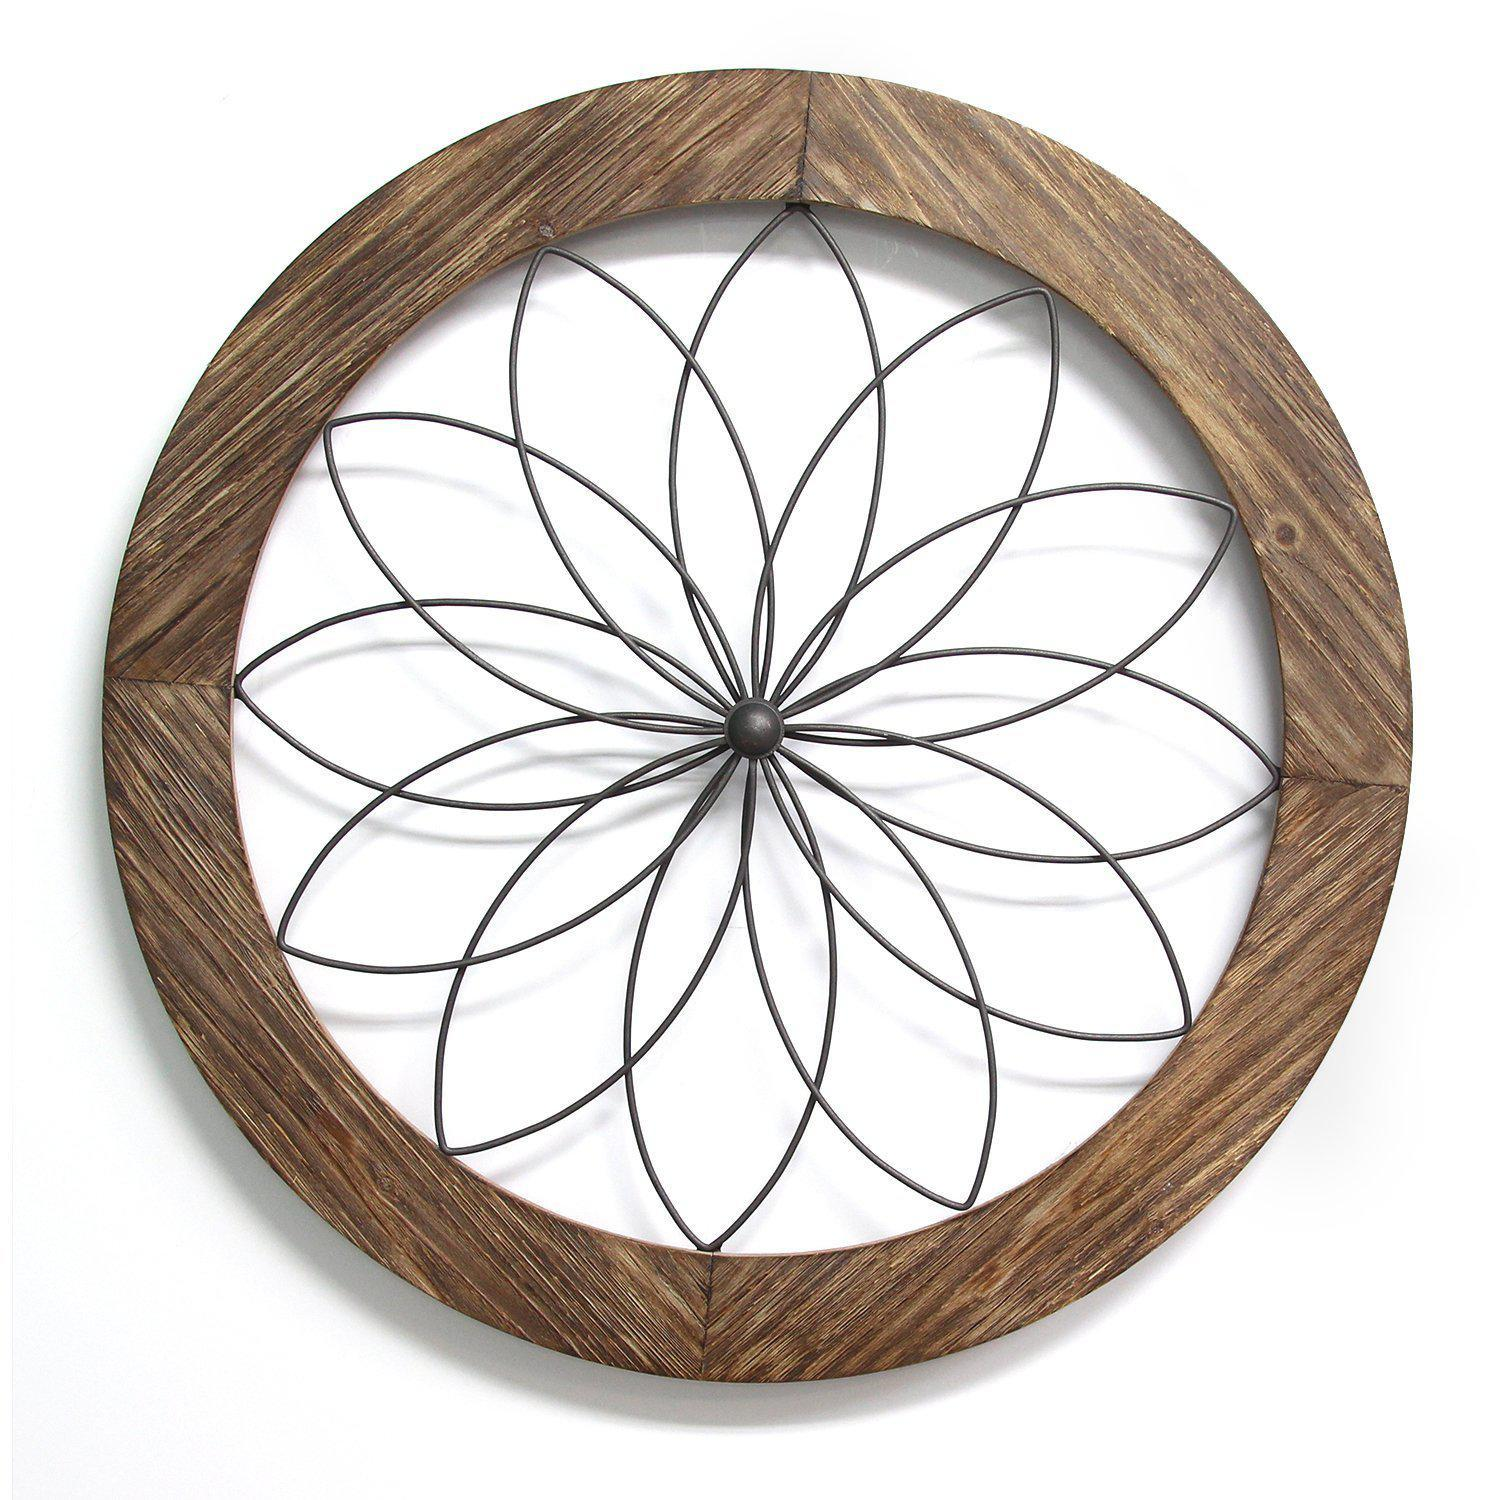 Stratton Home Décor Round Wood and Metal Medallion Wall Decor | Wall Accent | parker-gwen